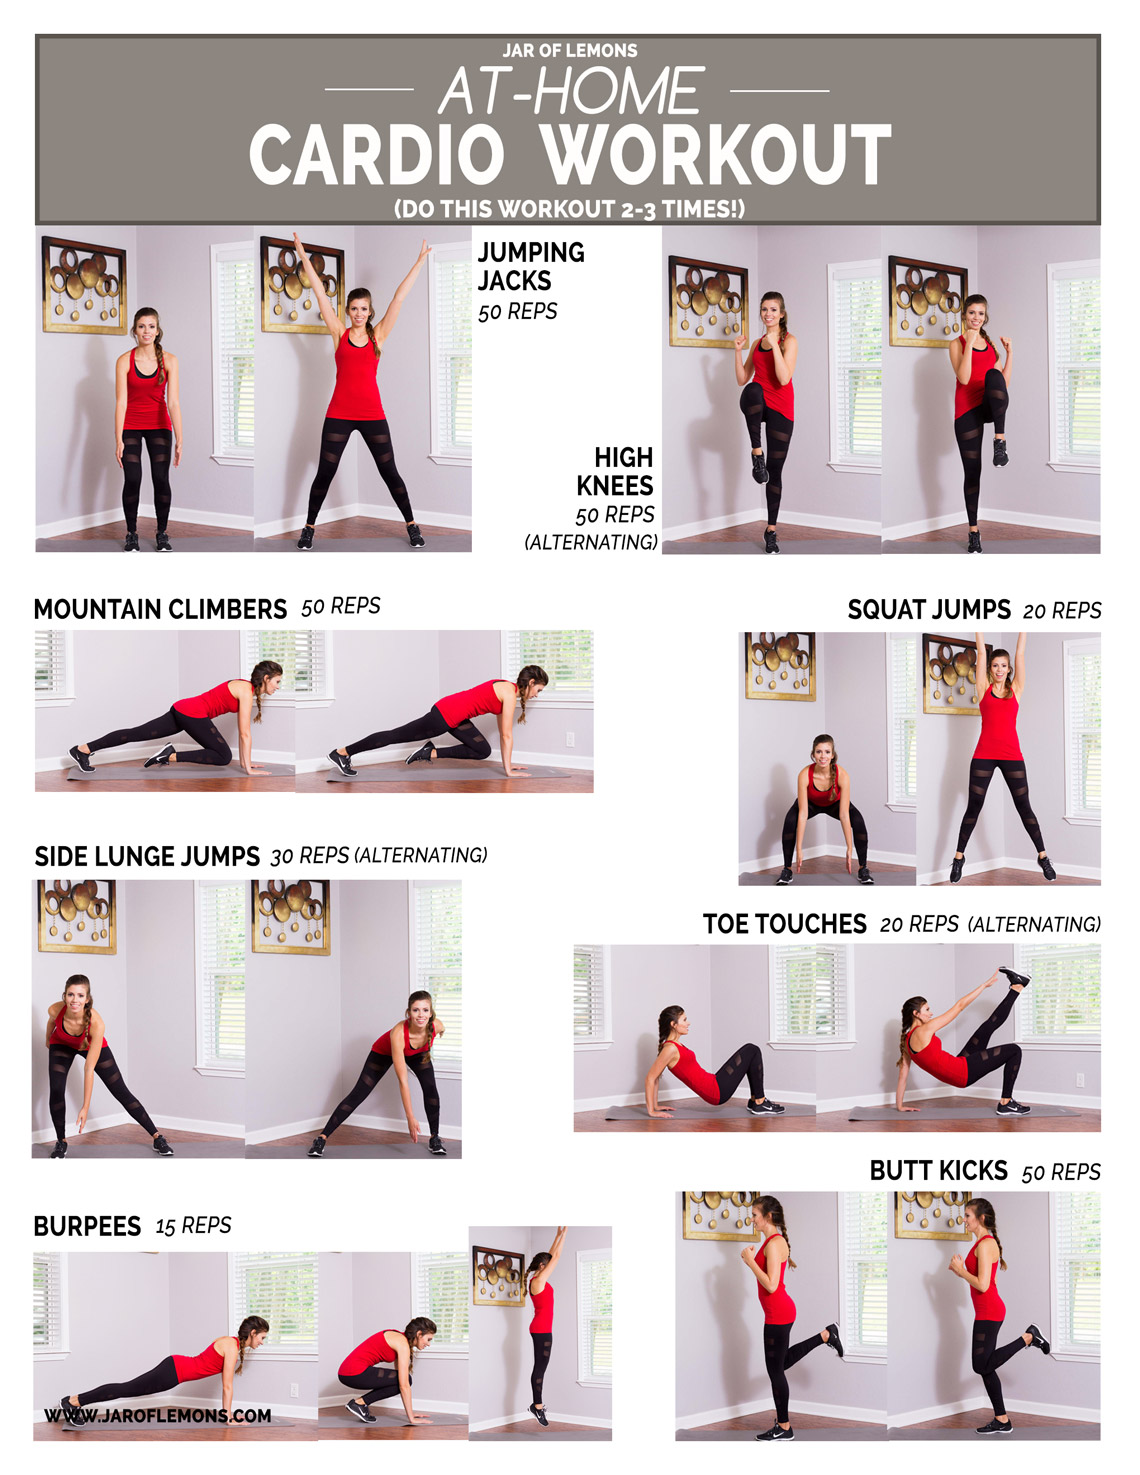 at-home-cardio-workout-graphic